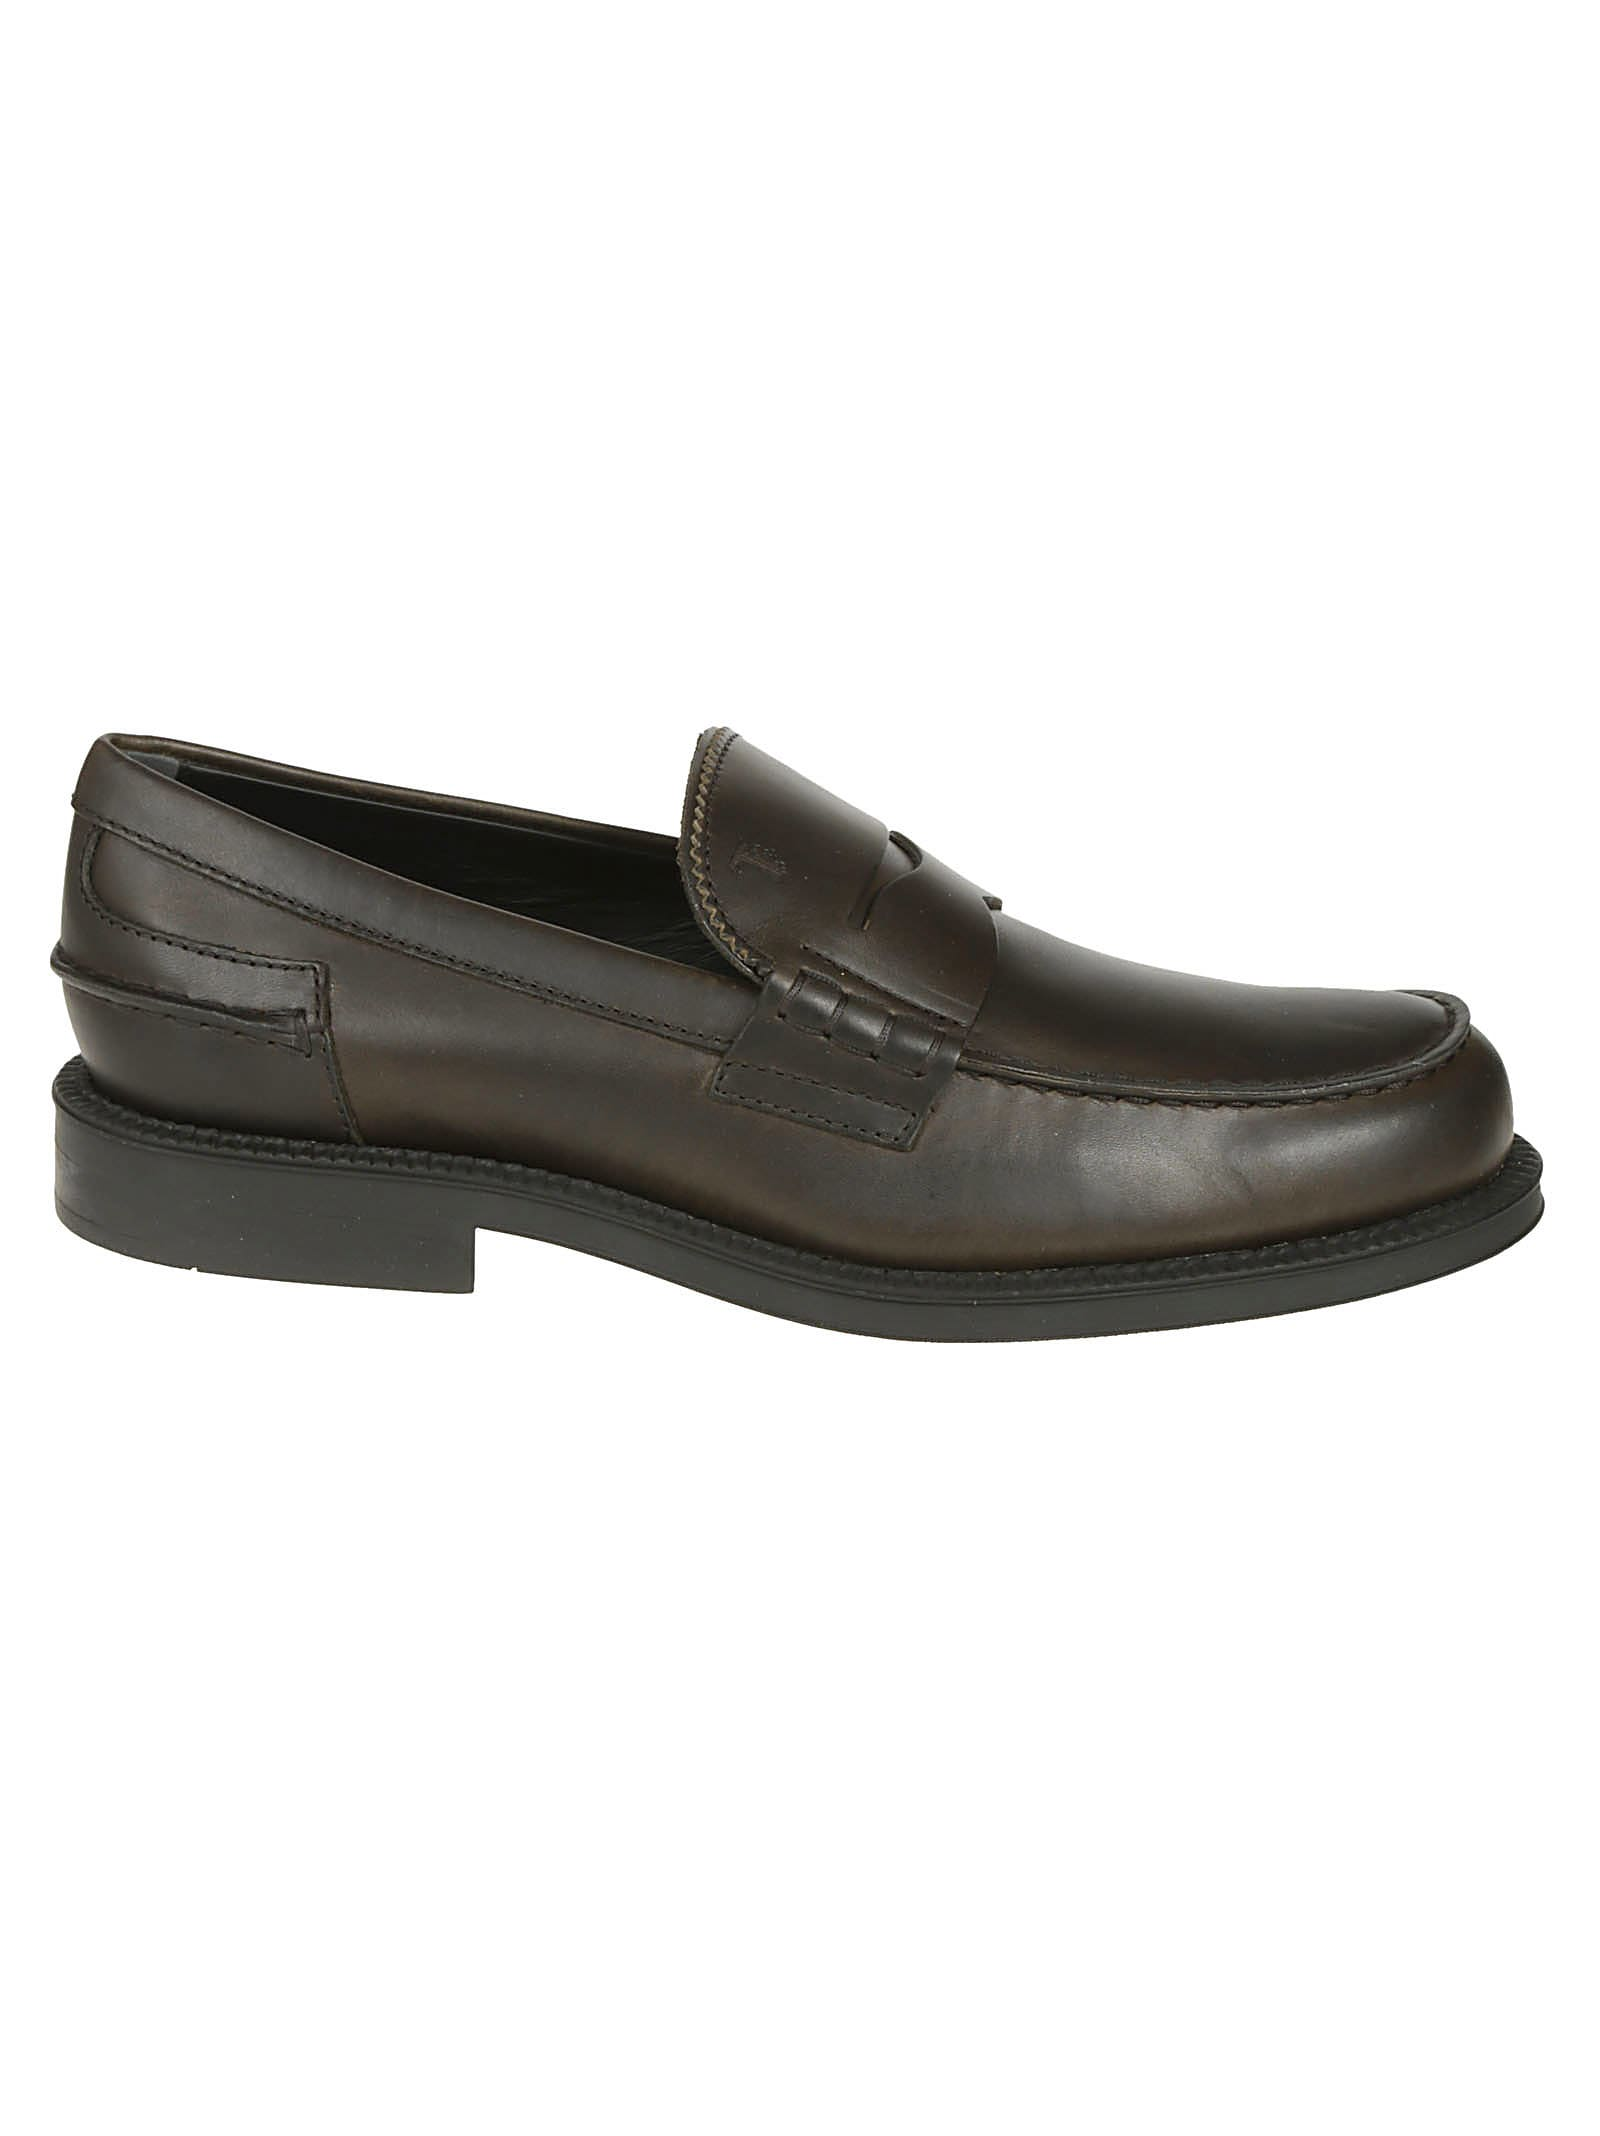 Tods Branded Loafers